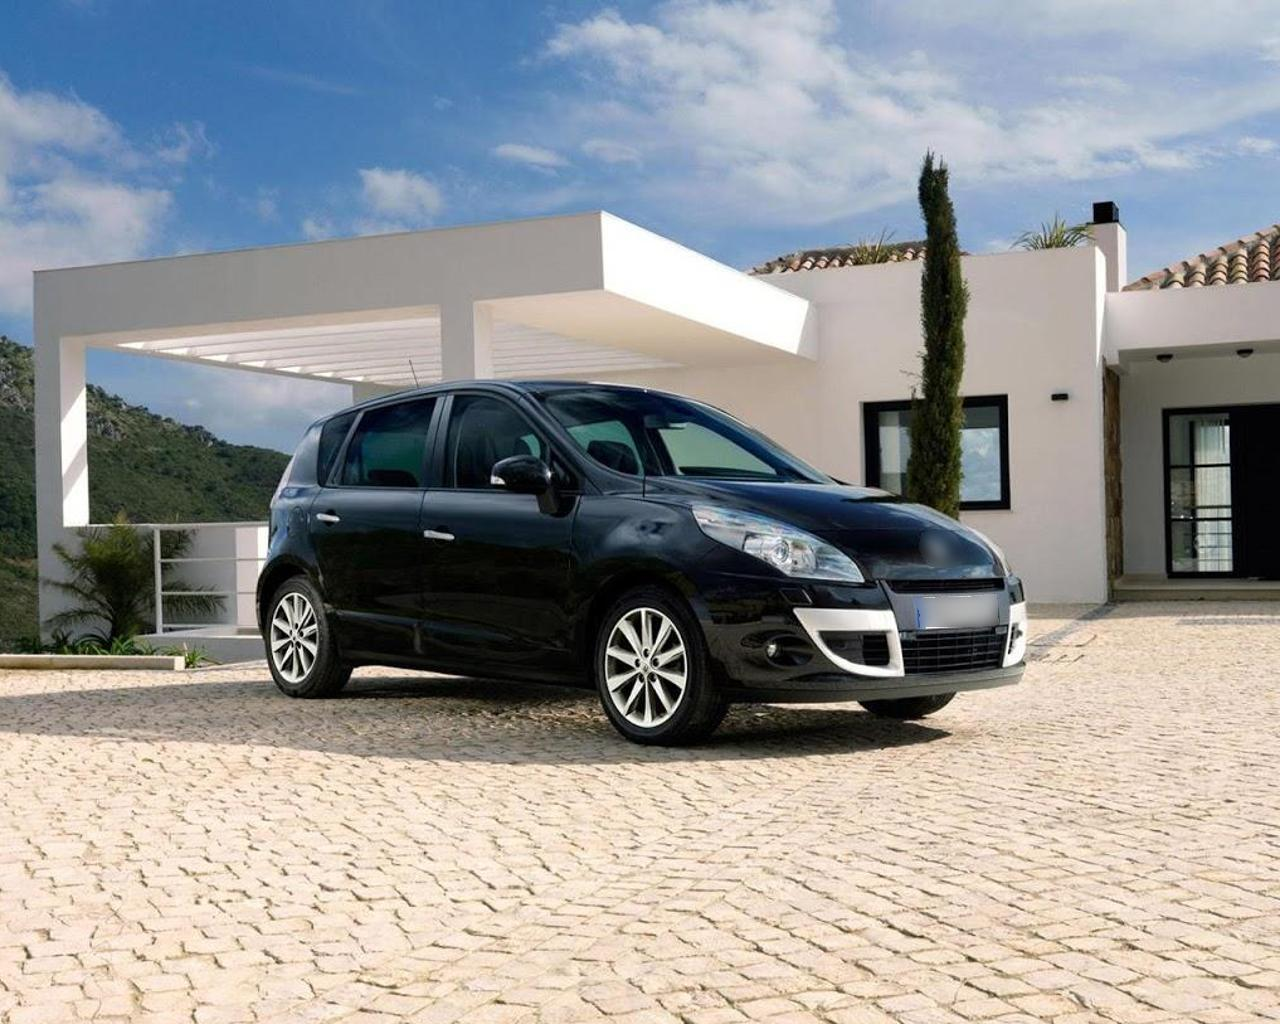 Fondo Pantalla Renault Scenic For Android Apk Download